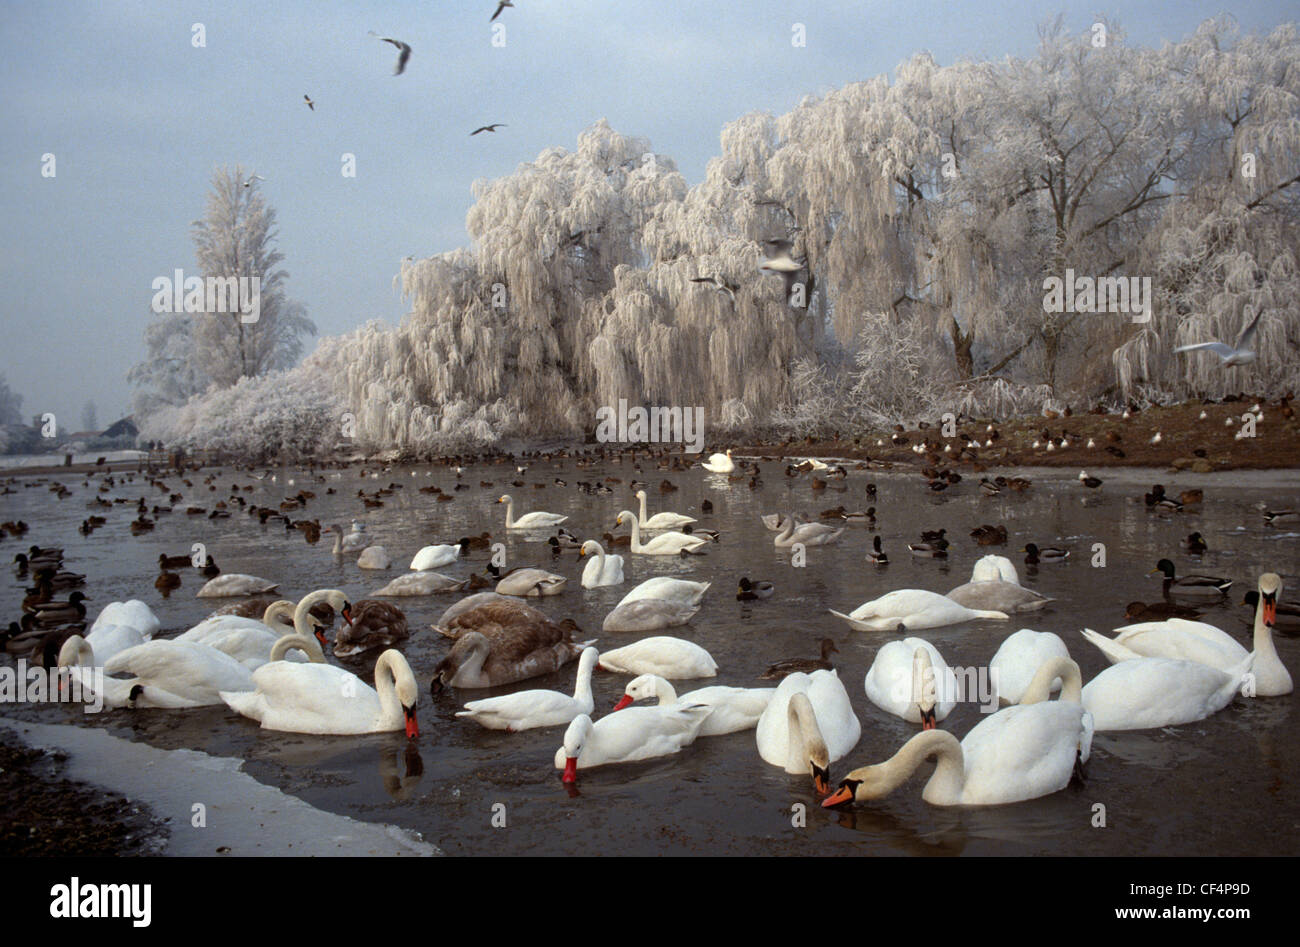 Swans on a frozen lake at Slimbridge Wetland Centre, the birthplace of modern conservation. - Stock Image